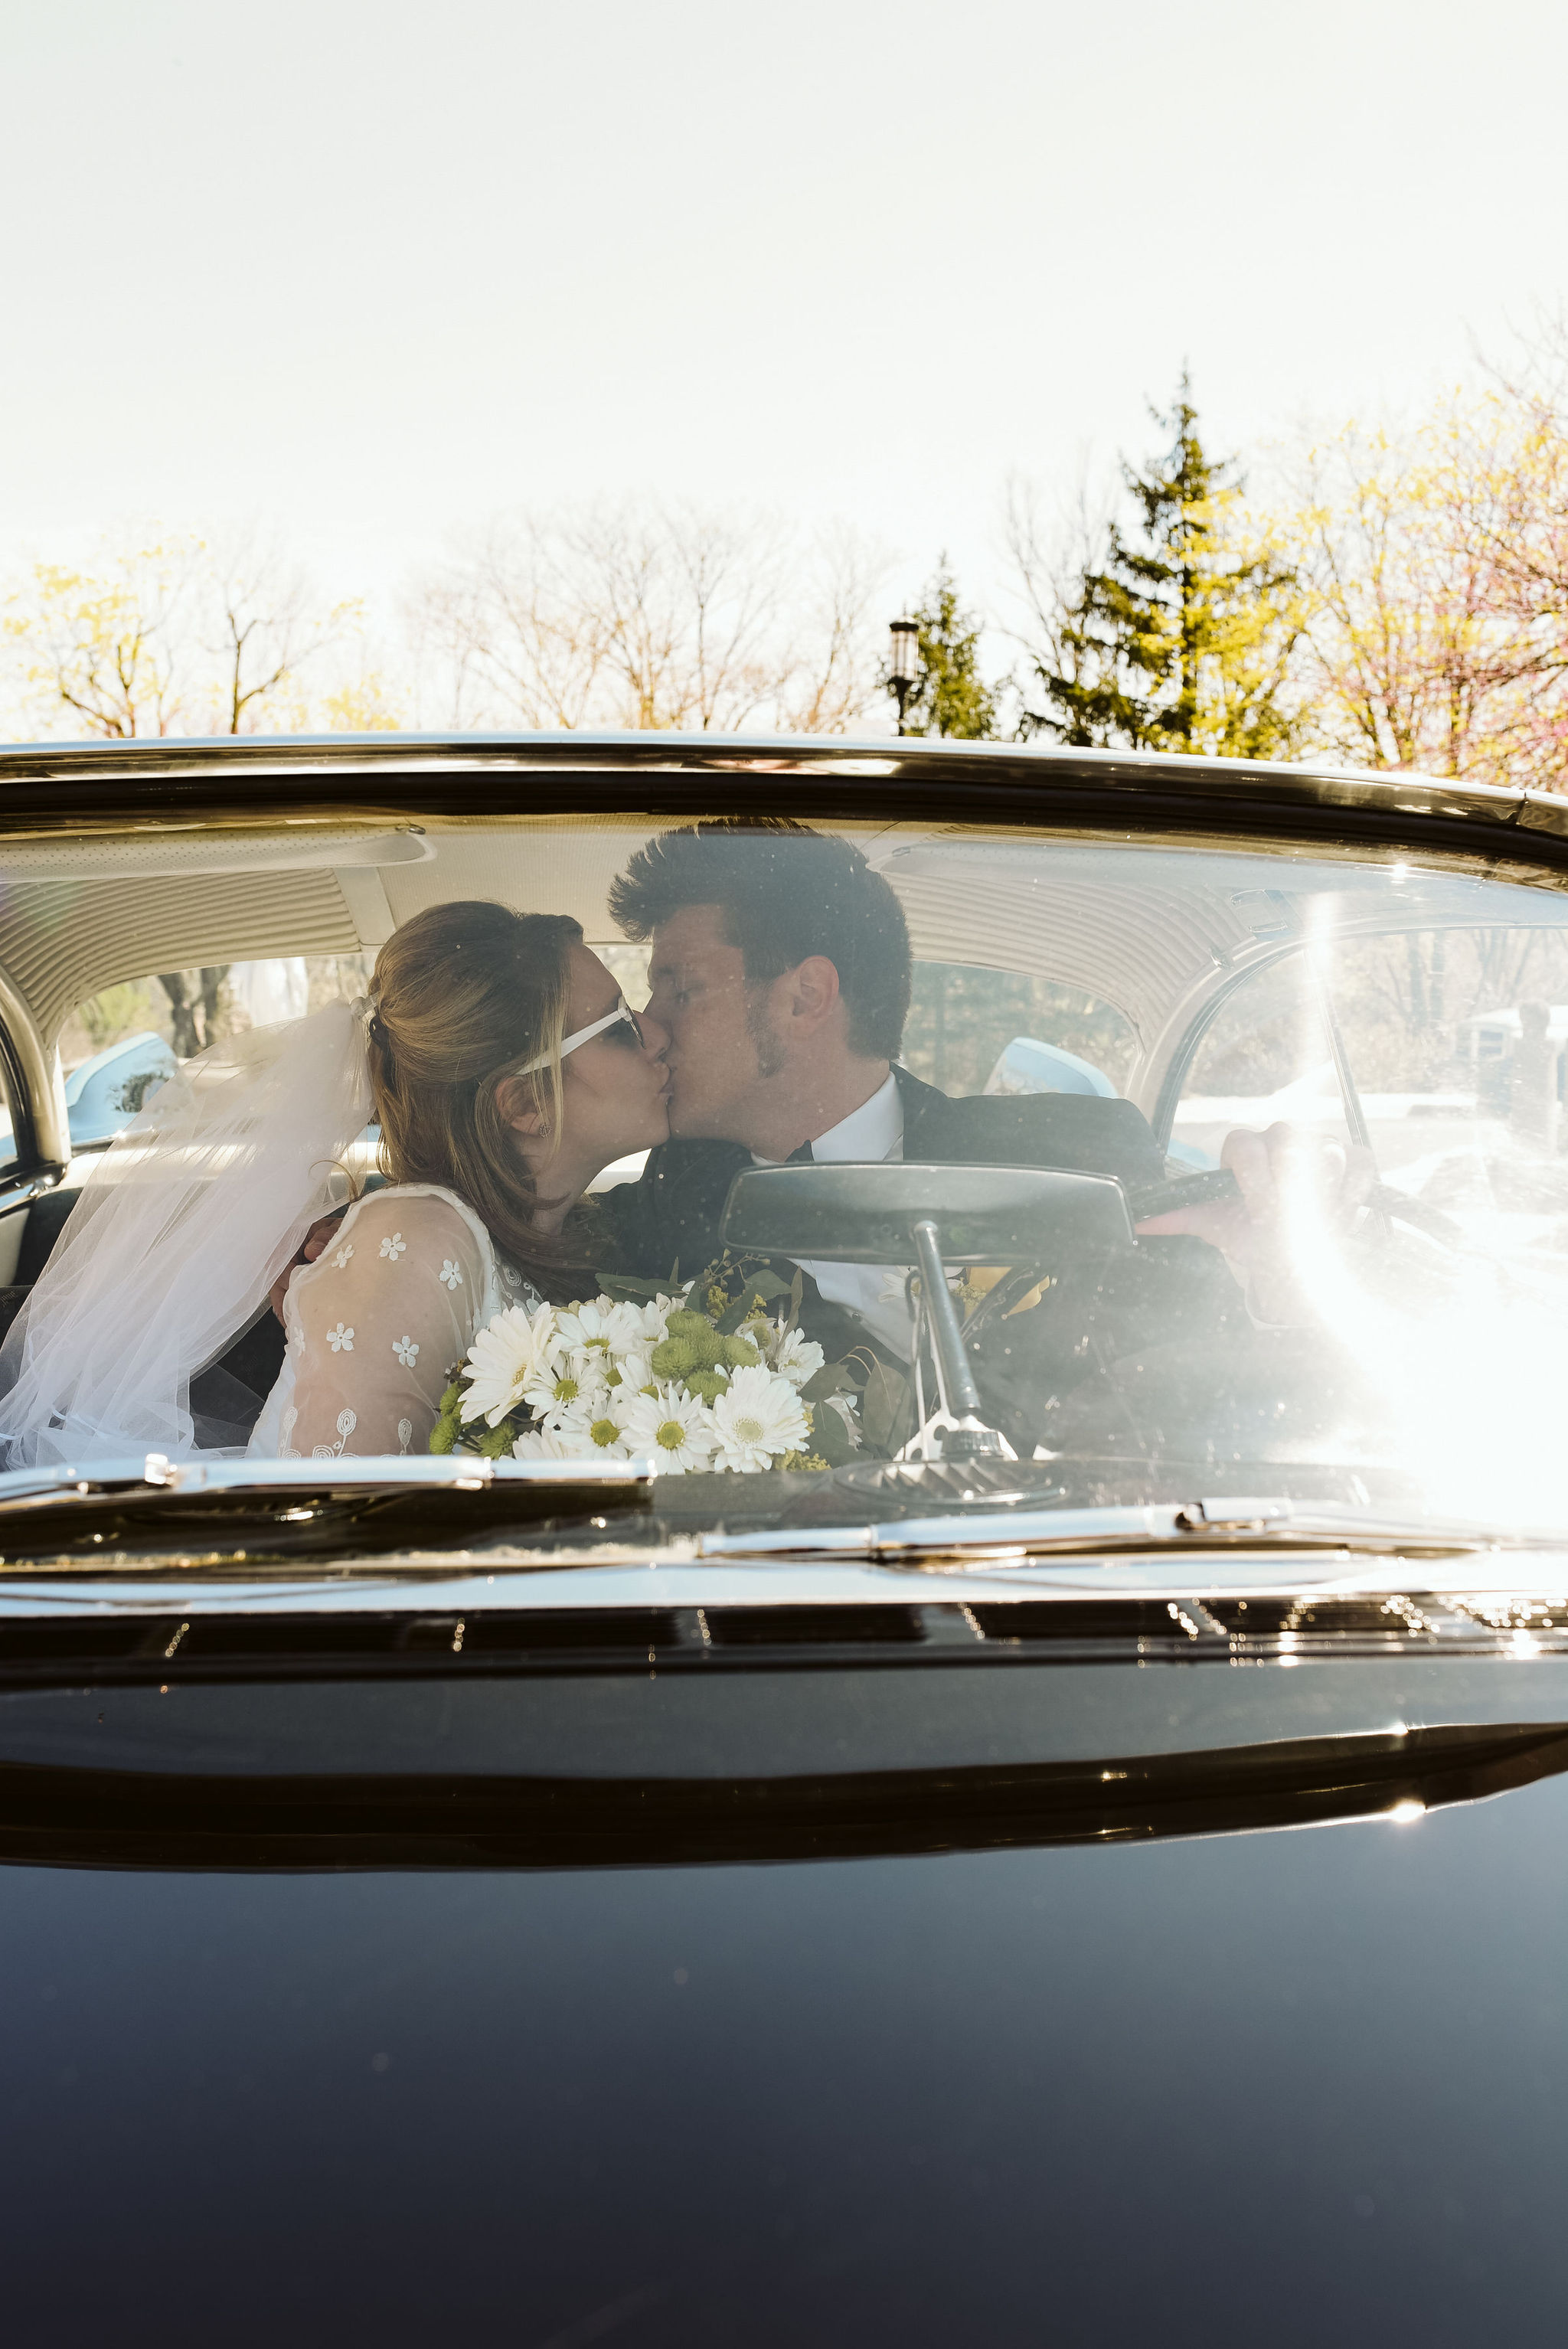 Baltimore, Church Wedding, Maryland Wedding Photographer, Vintage, Classic, 50s Style, Bride and Groom Kissing in Classic Car, White Daisies